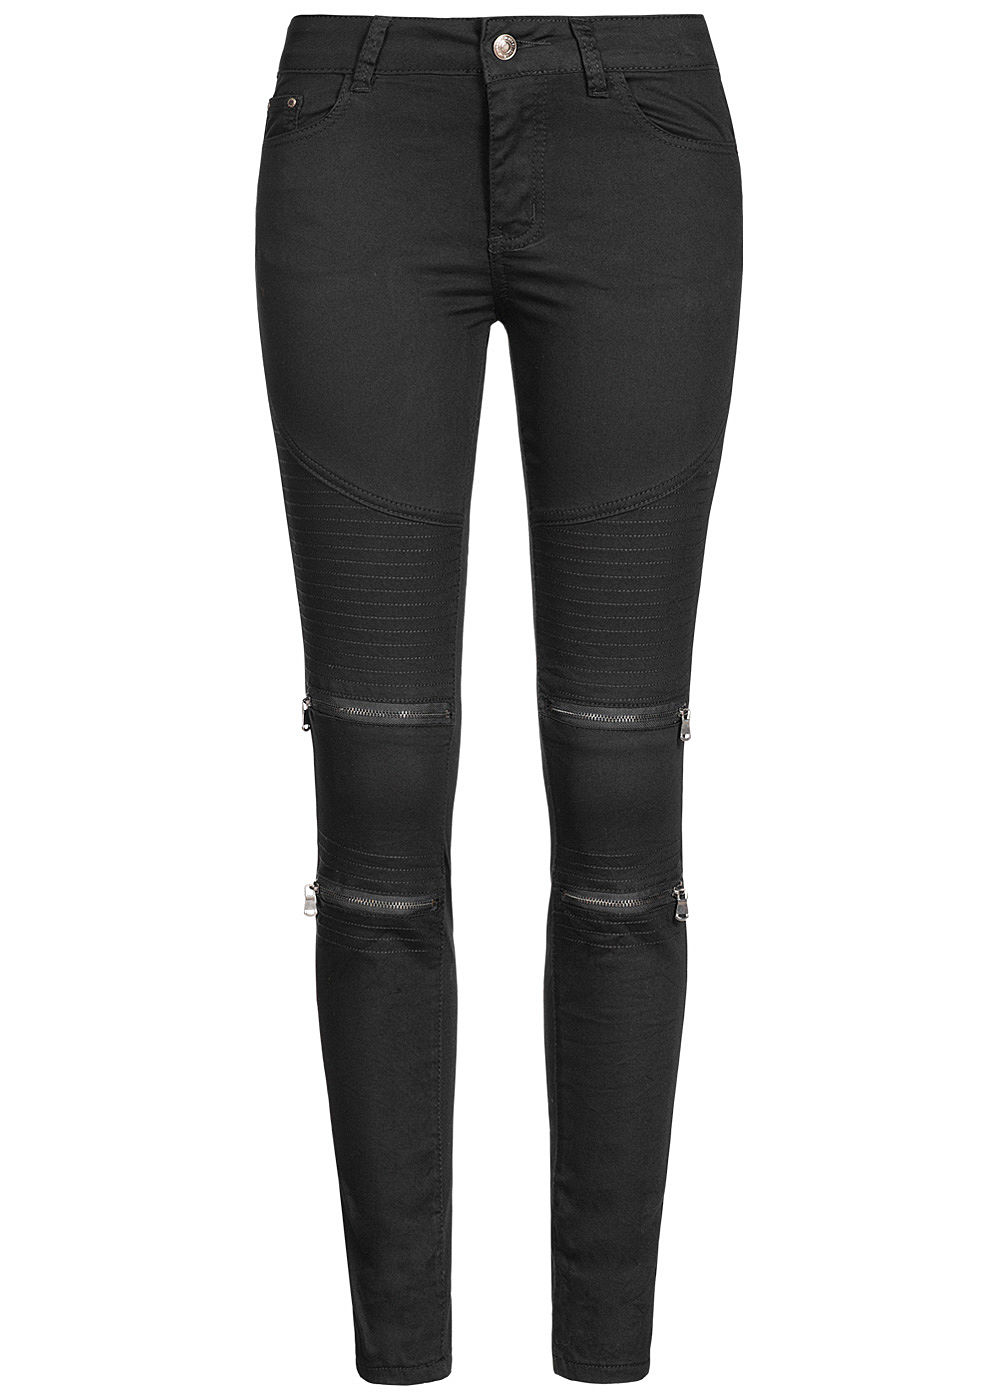 seventyseven lifestyle damen biker zip jeans 5 pockets schwarz denim 77onlineshop. Black Bedroom Furniture Sets. Home Design Ideas